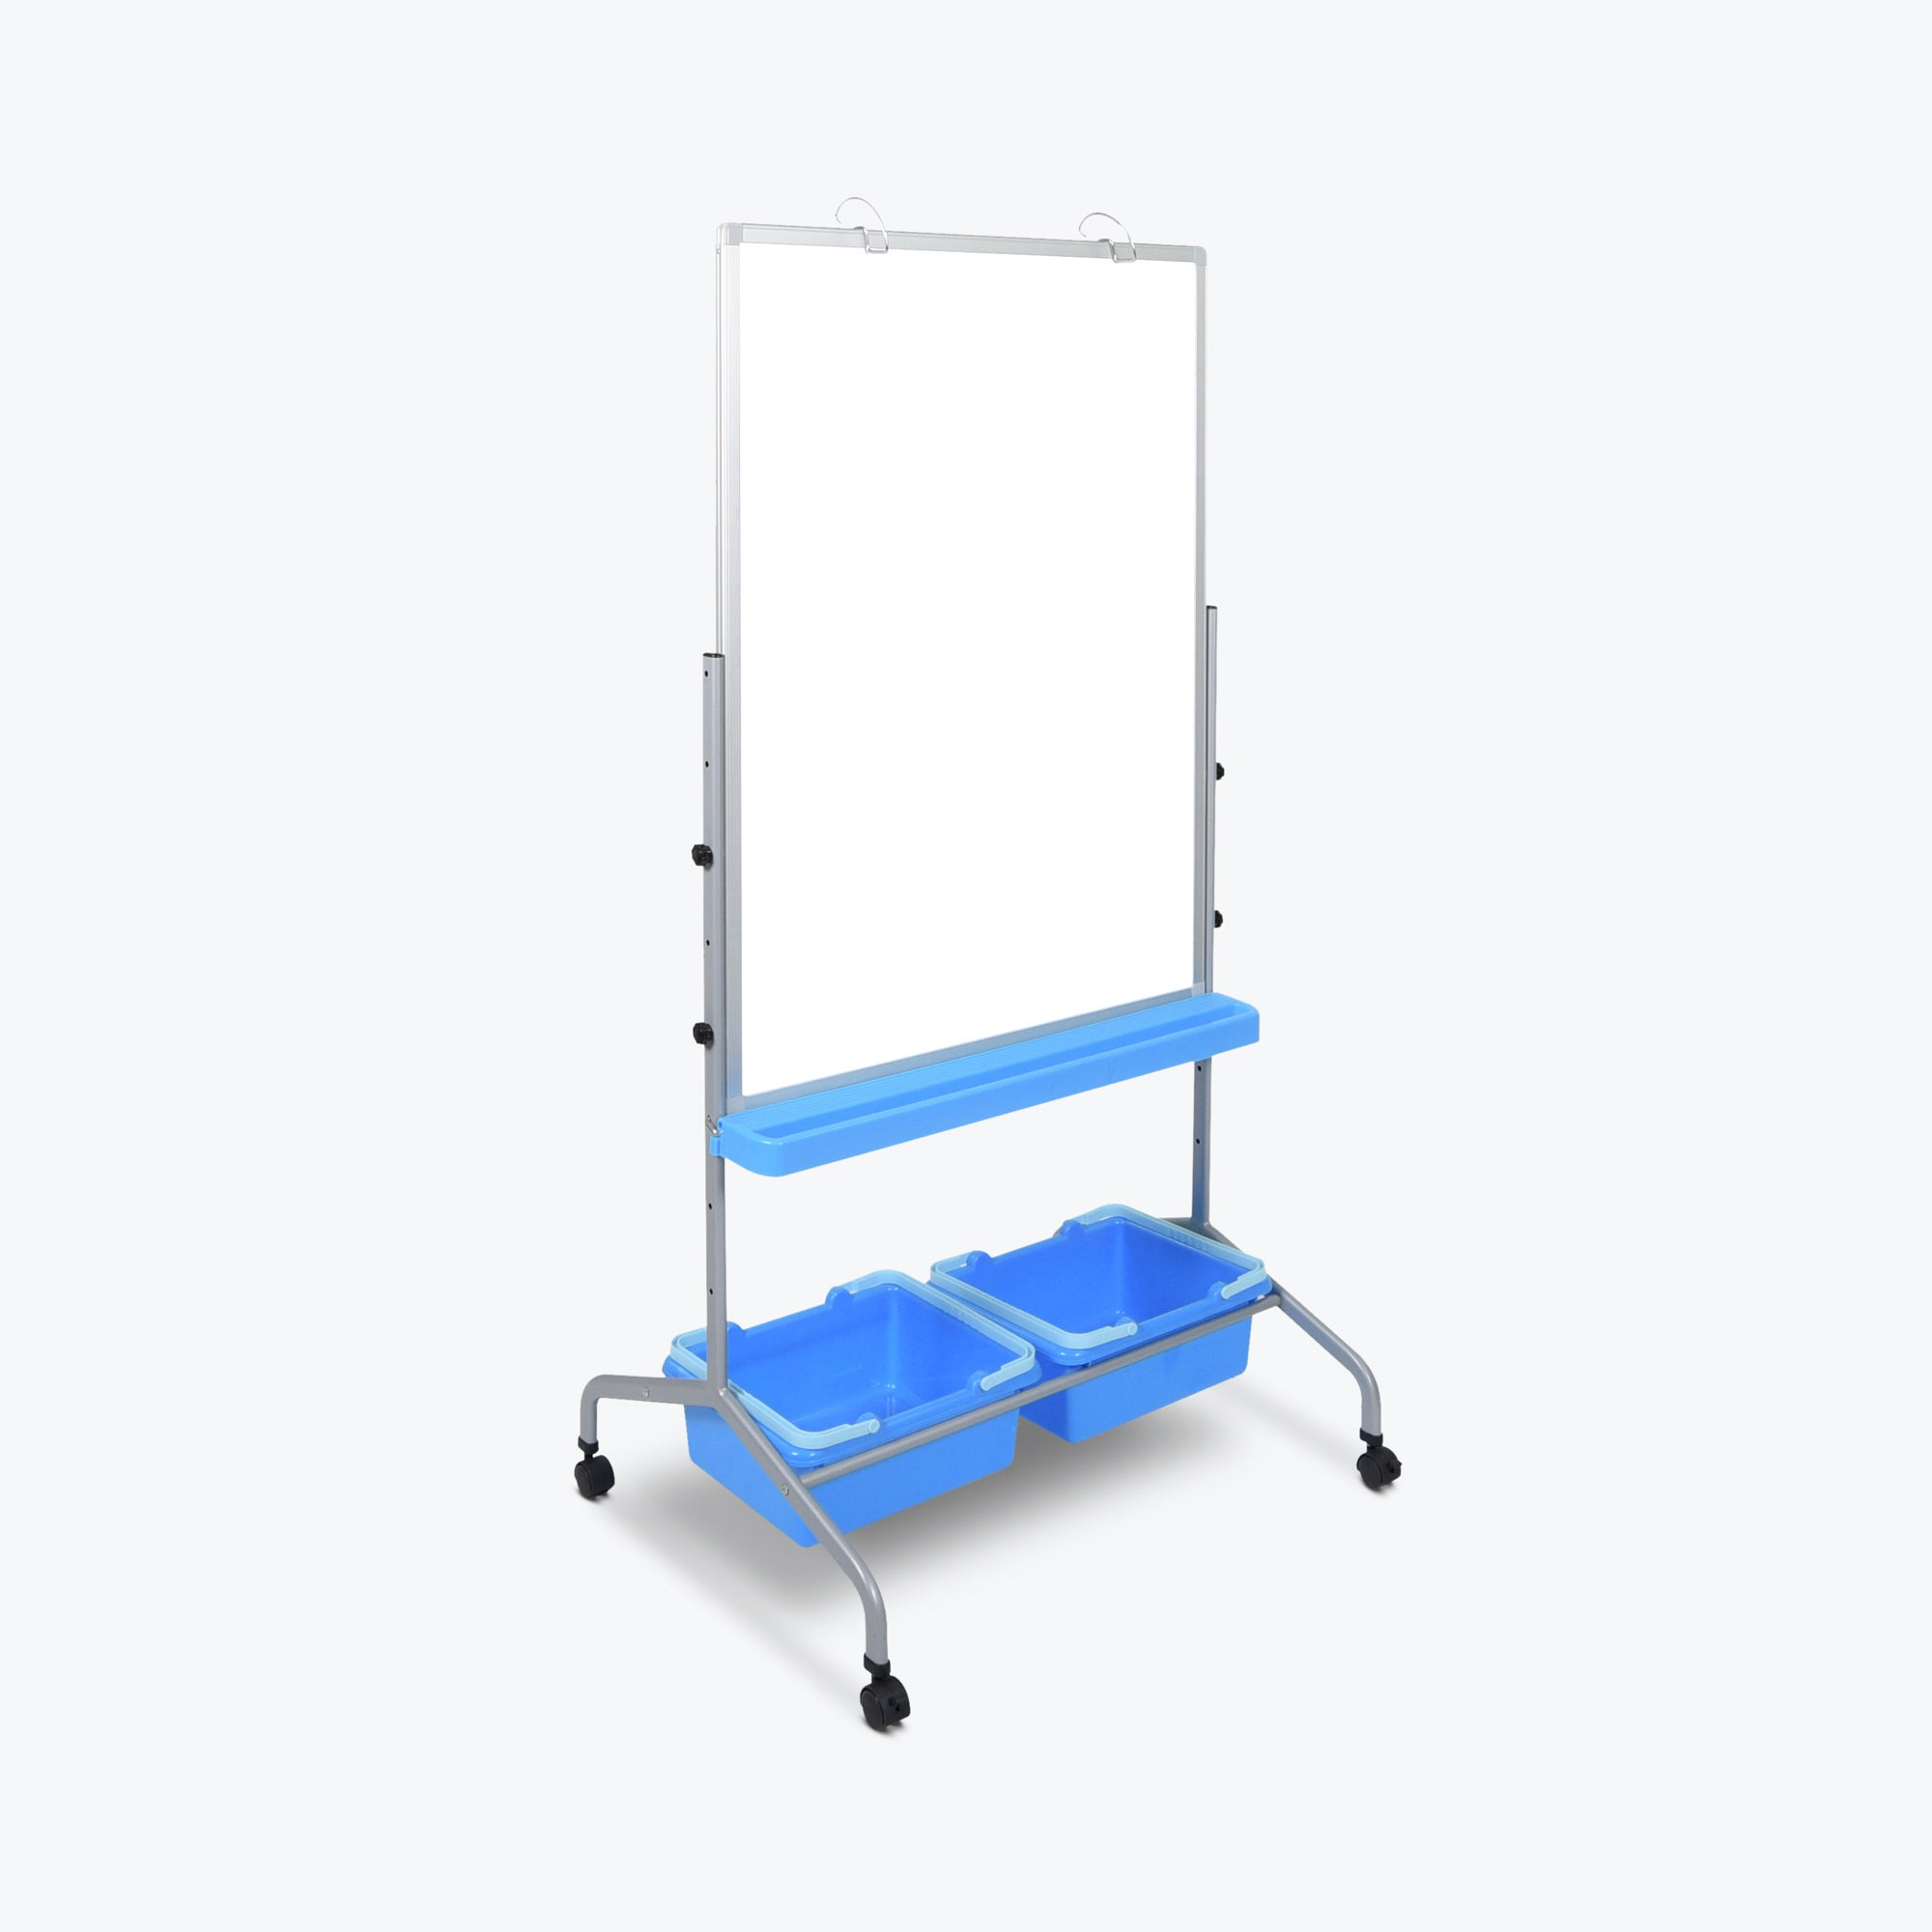 "Luxor Classroom Chart Stand w/ Storage Bins 31""W x 25""D x 61"" to 72""H (White/Silver/Blue) - L330"